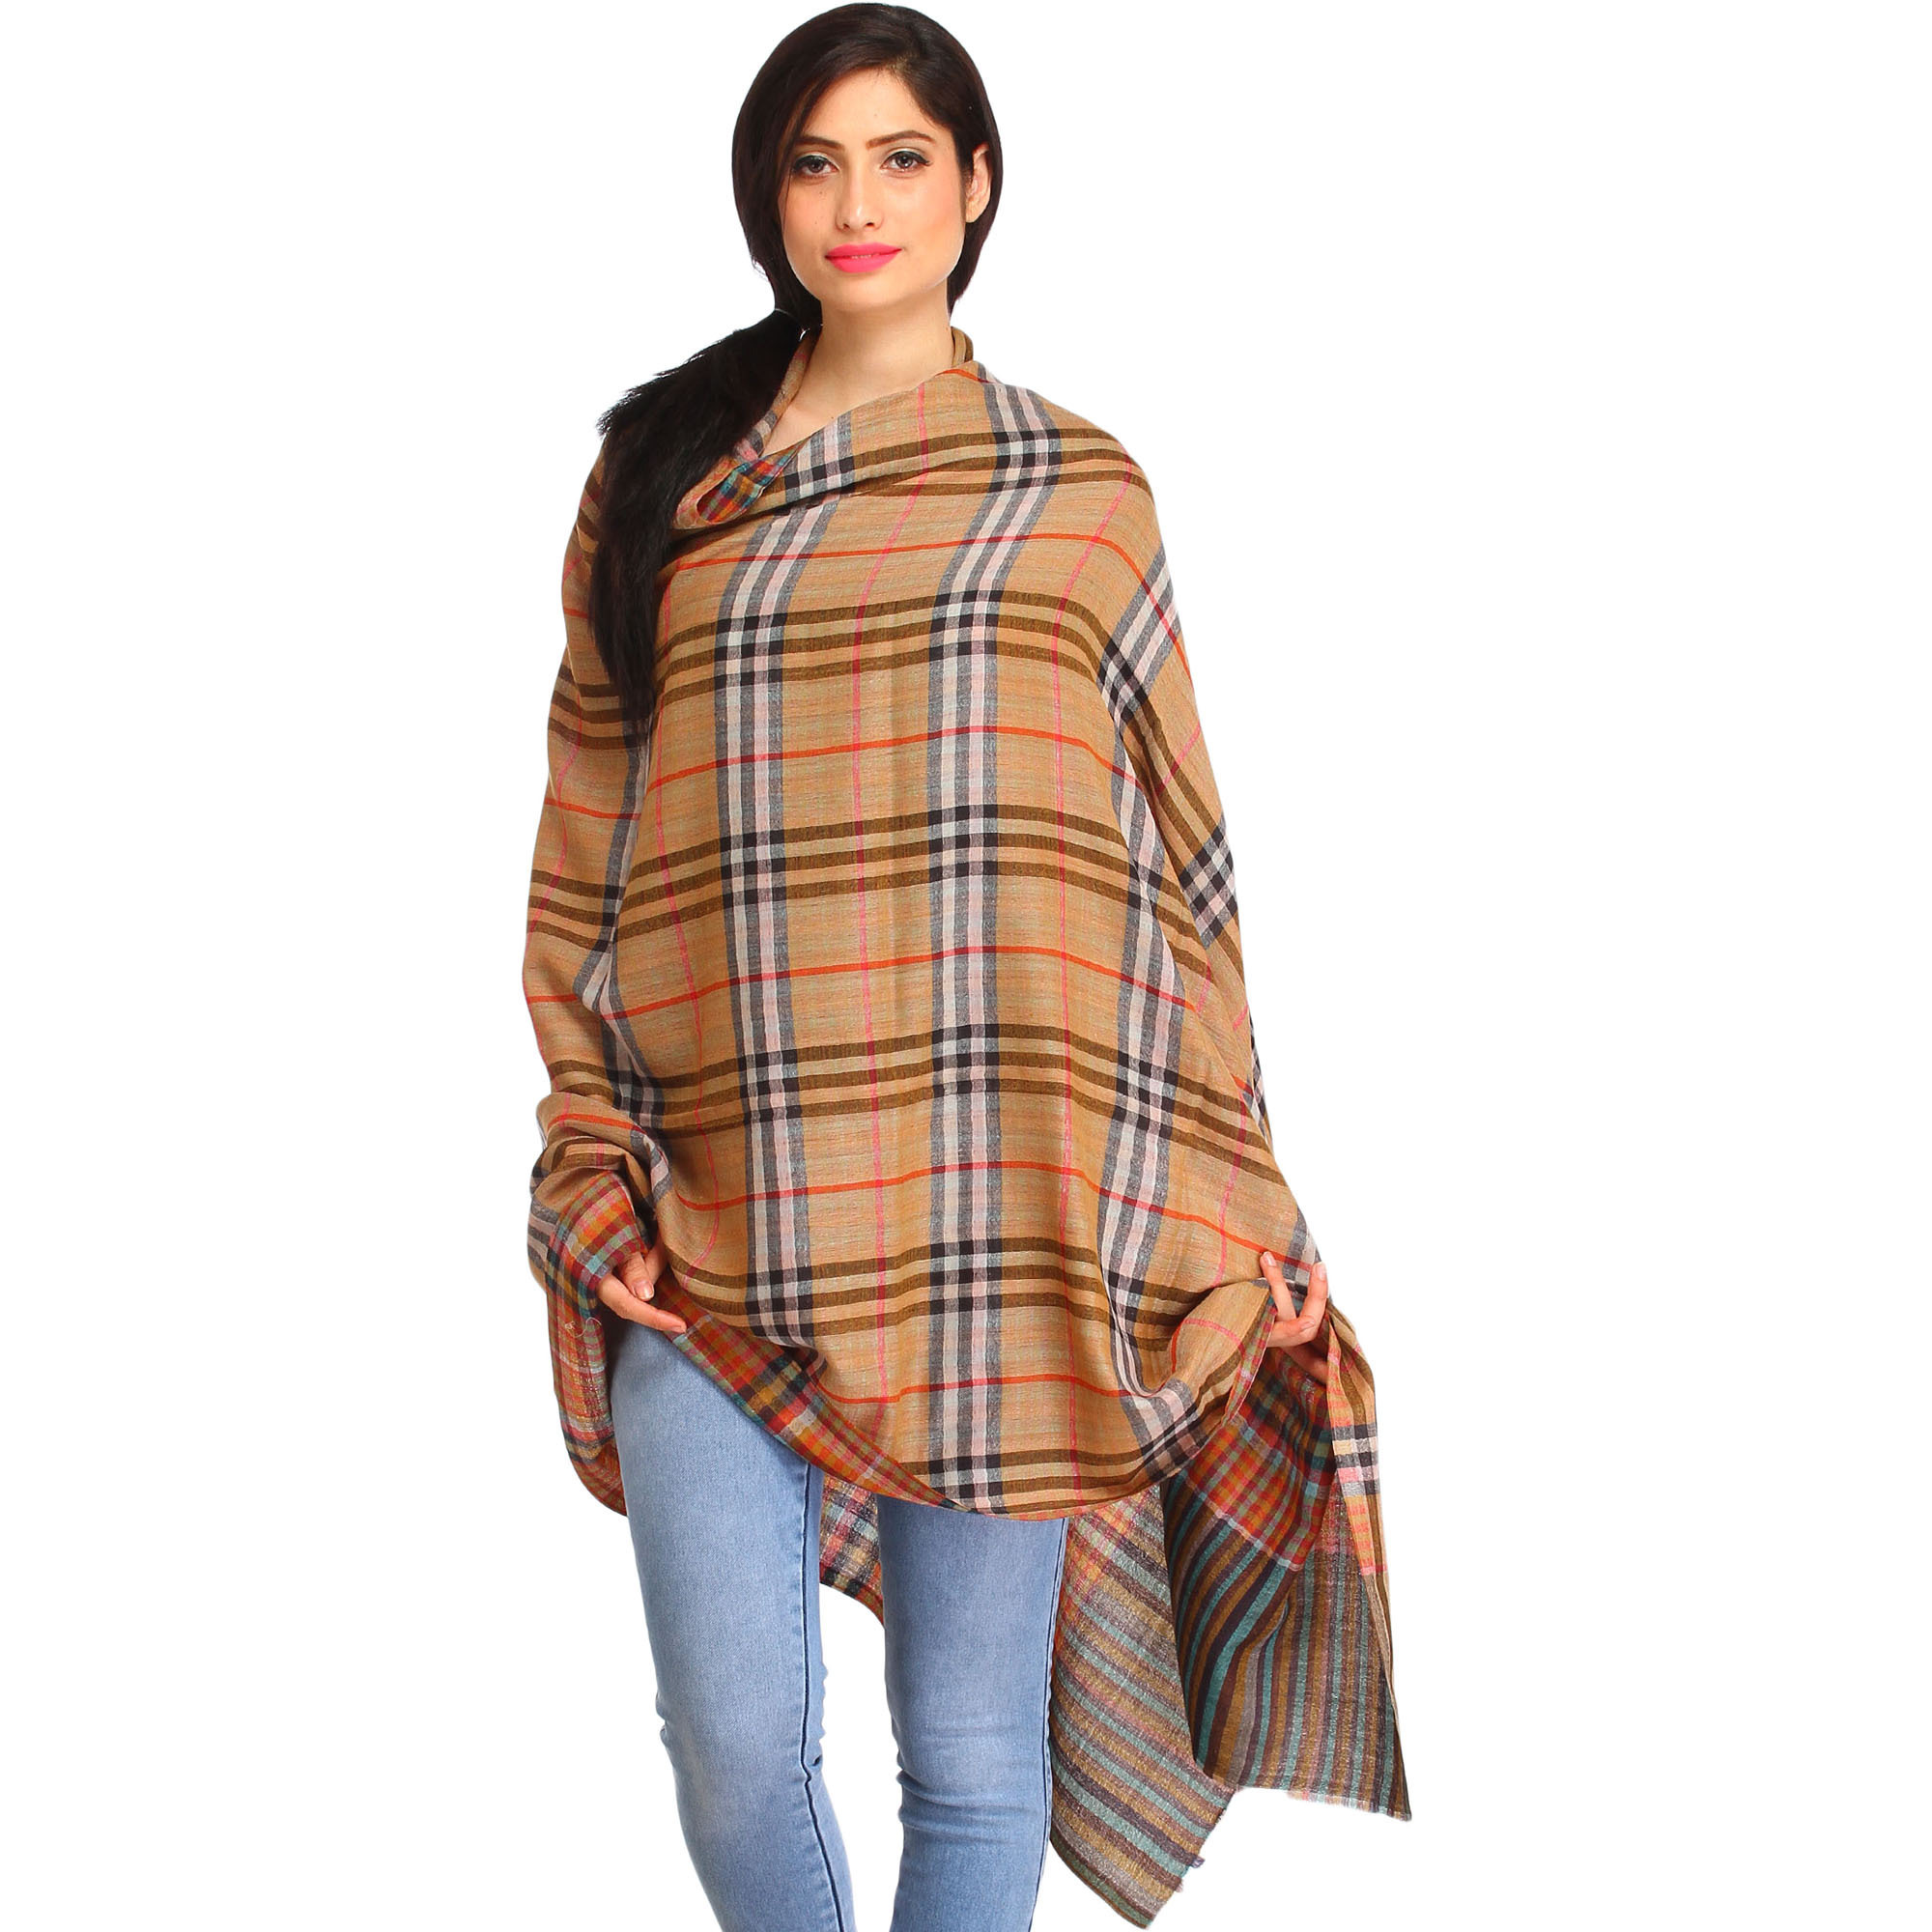 Reversible Burberry Shawl with Woven Checks